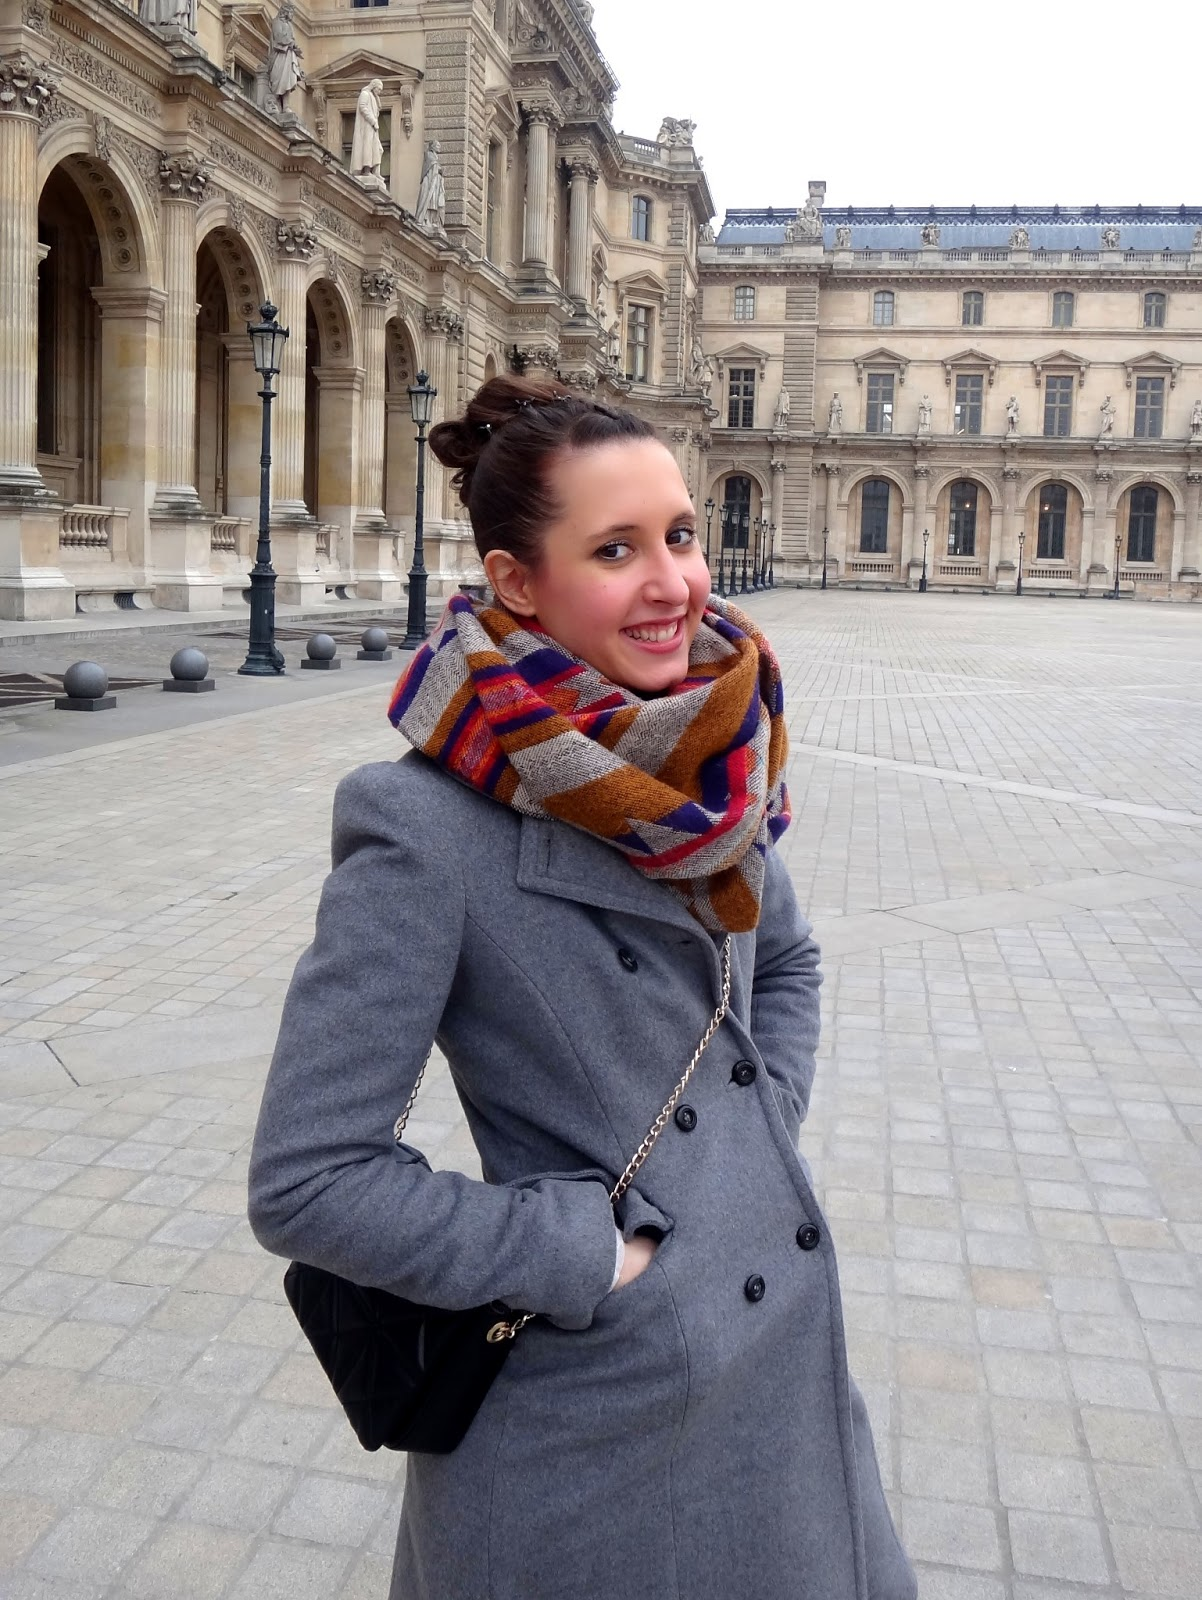 Where to buy winter coat in paris – Modern fashion jacket photo blog